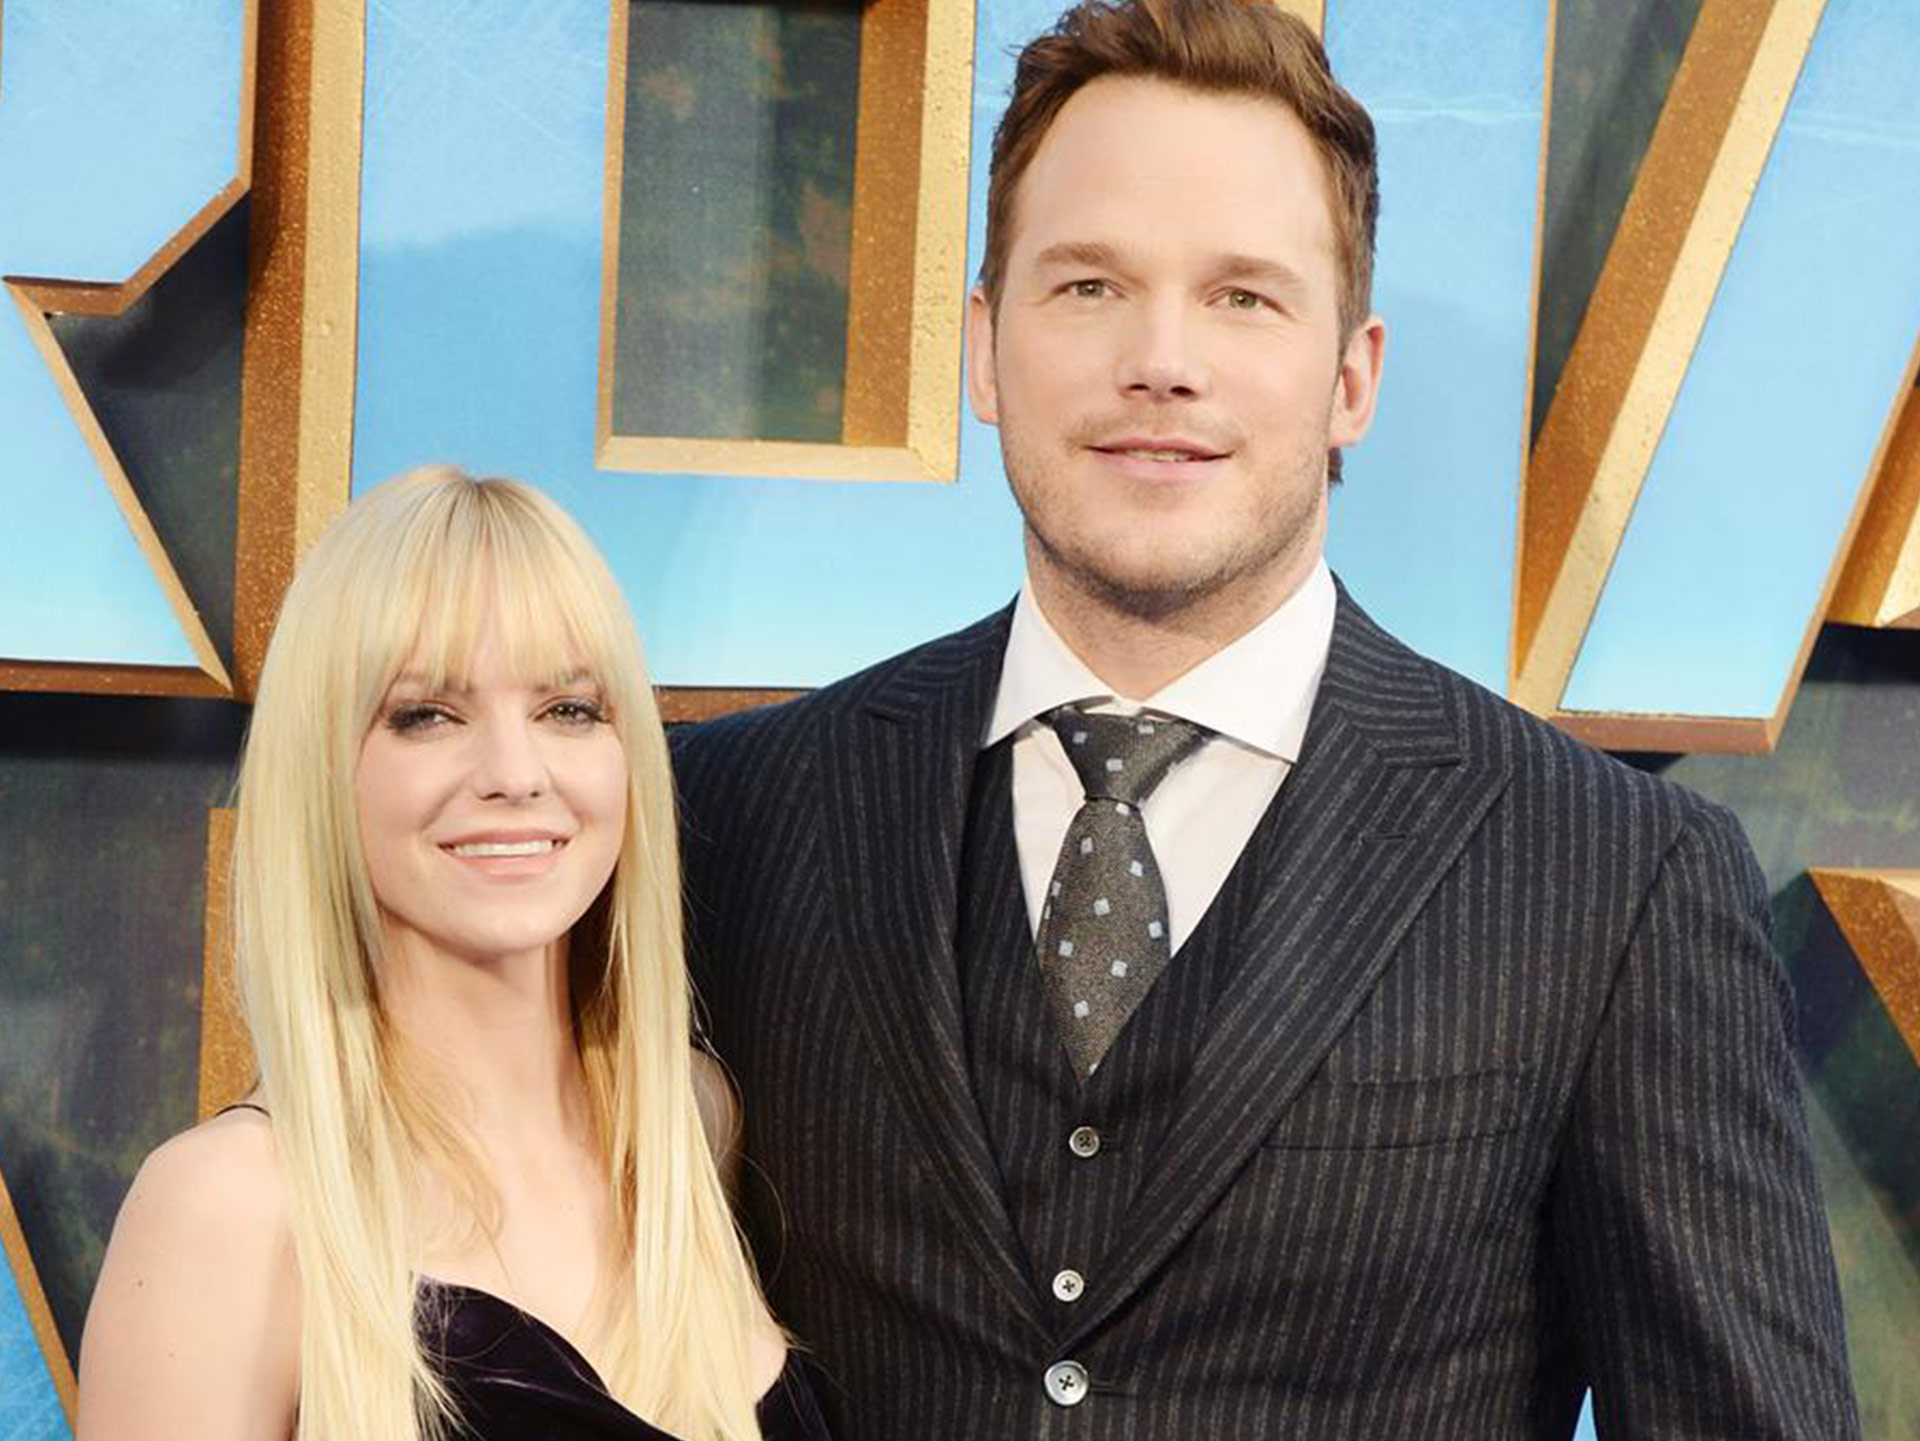 Chris Pratt thinks Anna Faris was awesome at the Emmys